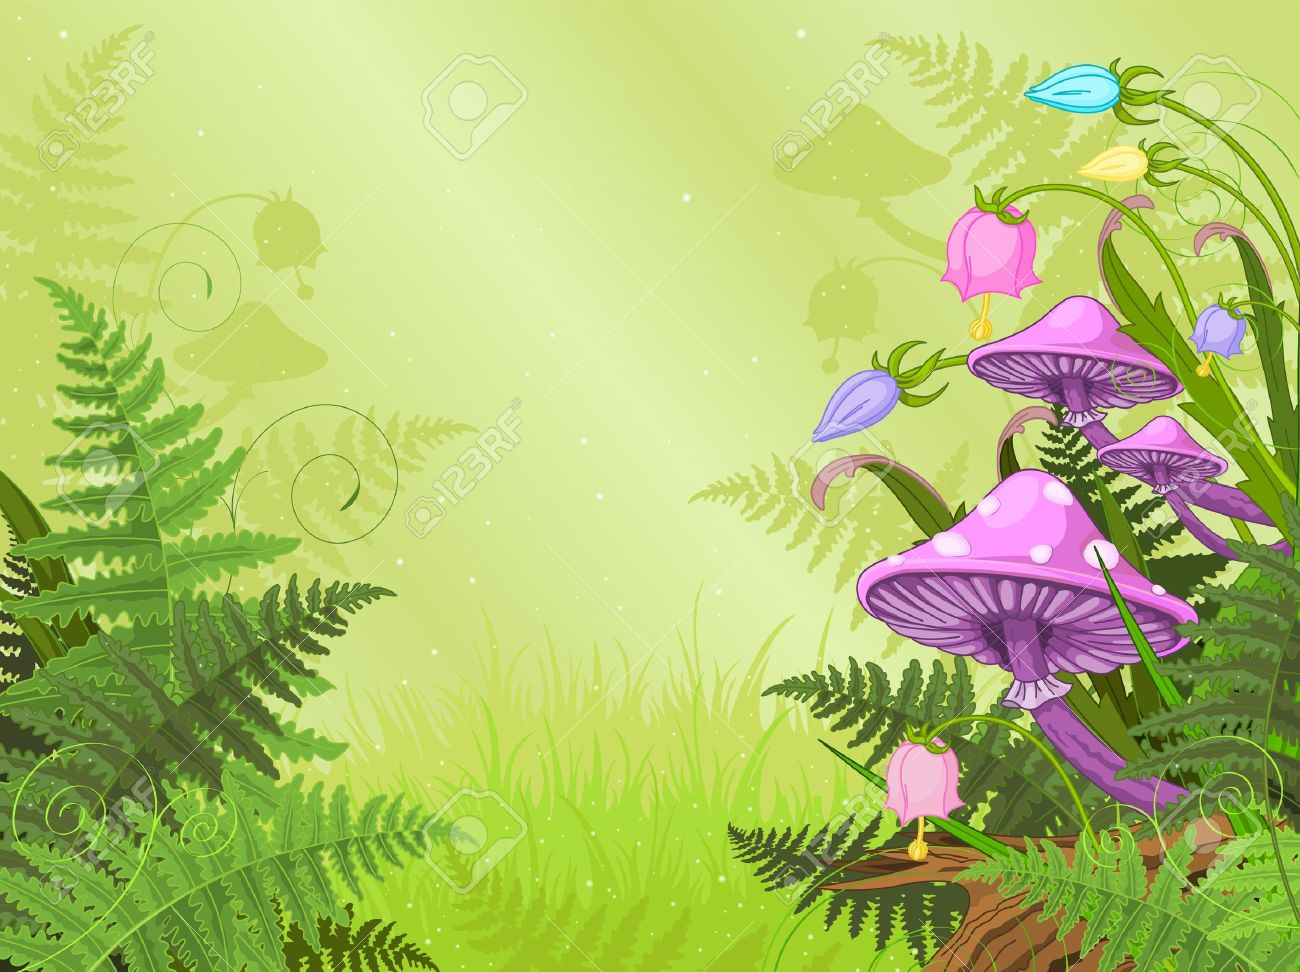 Magic landscape with mushrooms and flowers - 18089503